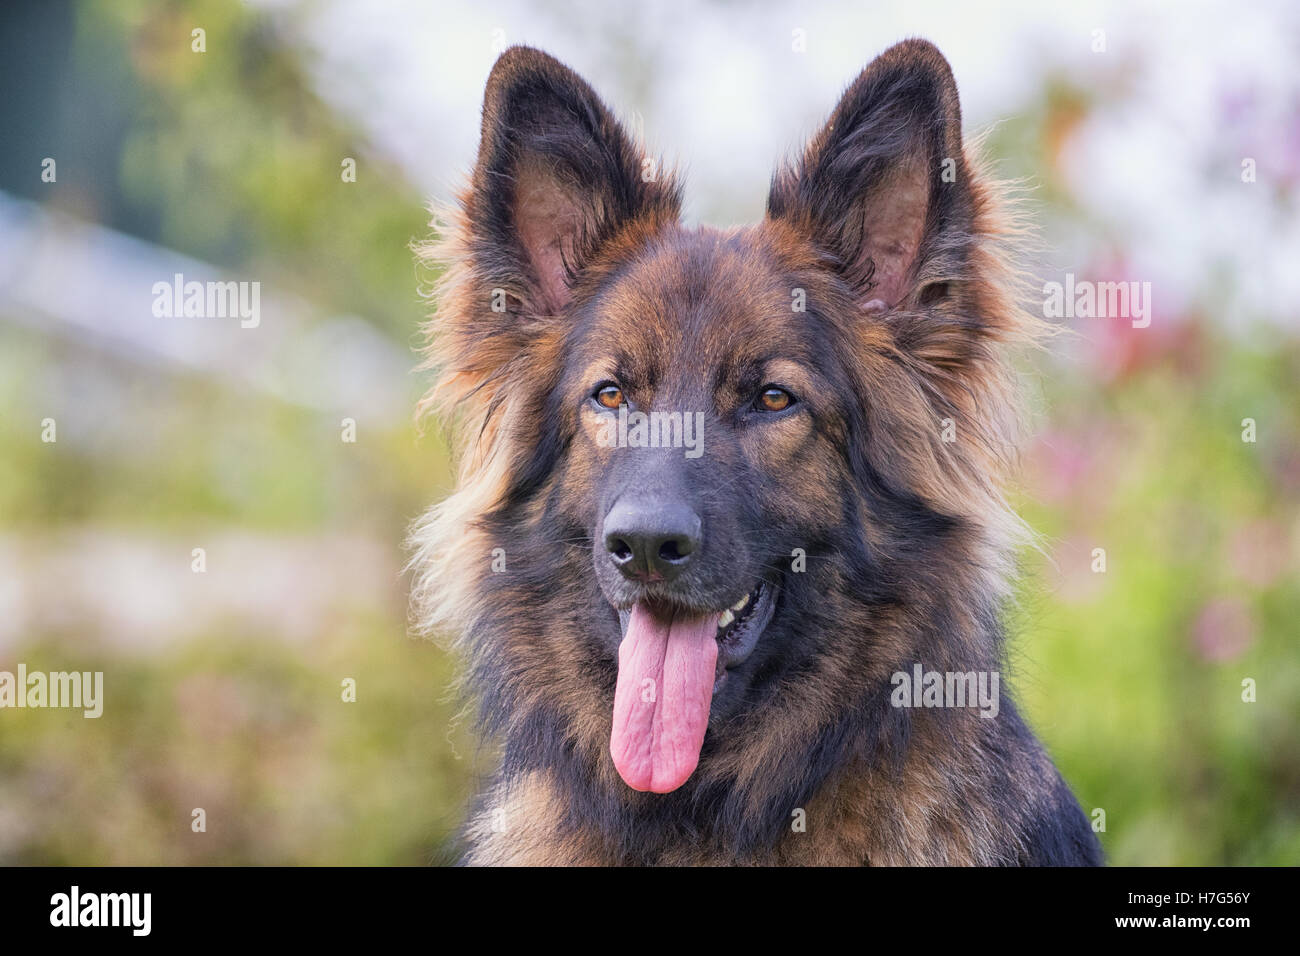 Big dog with his tongue sticking out outside looking at camera - Stock Image